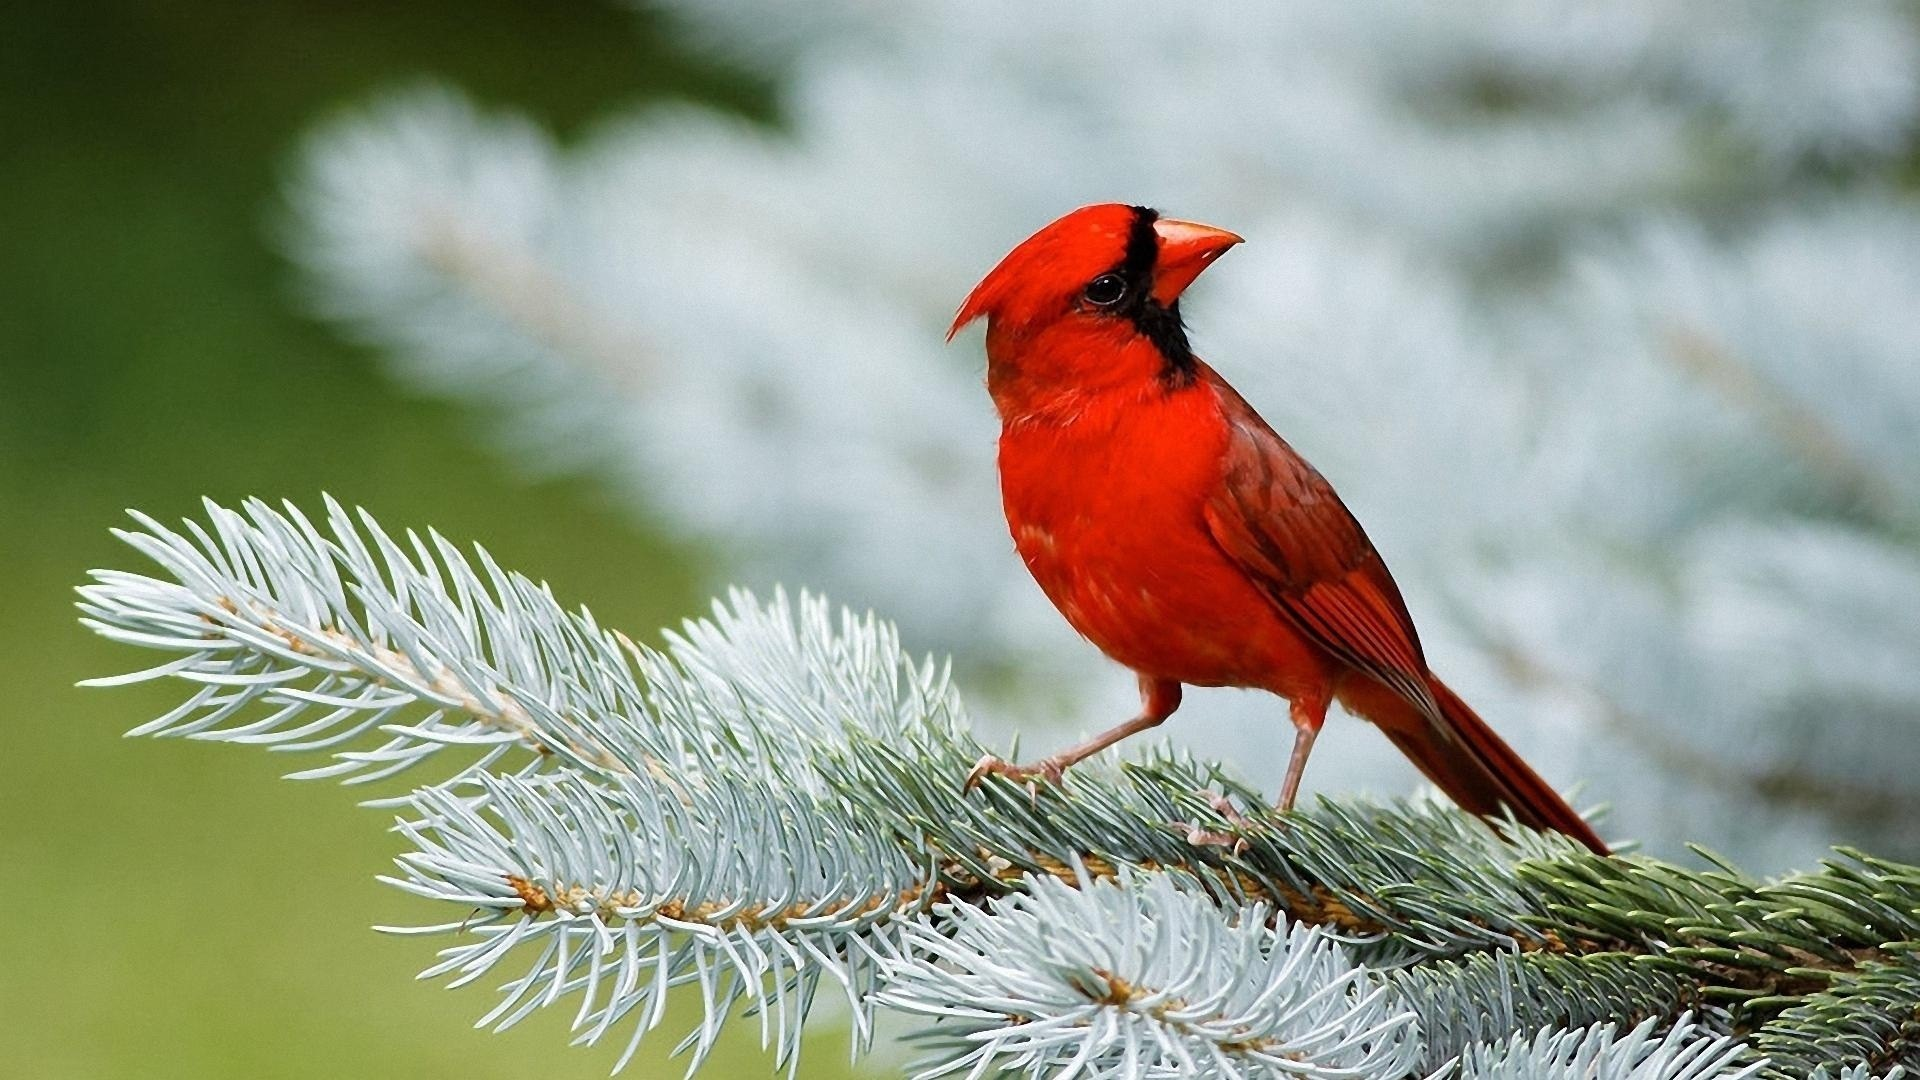 Red Bird Sparrow HD Wallpapers 1920x1080